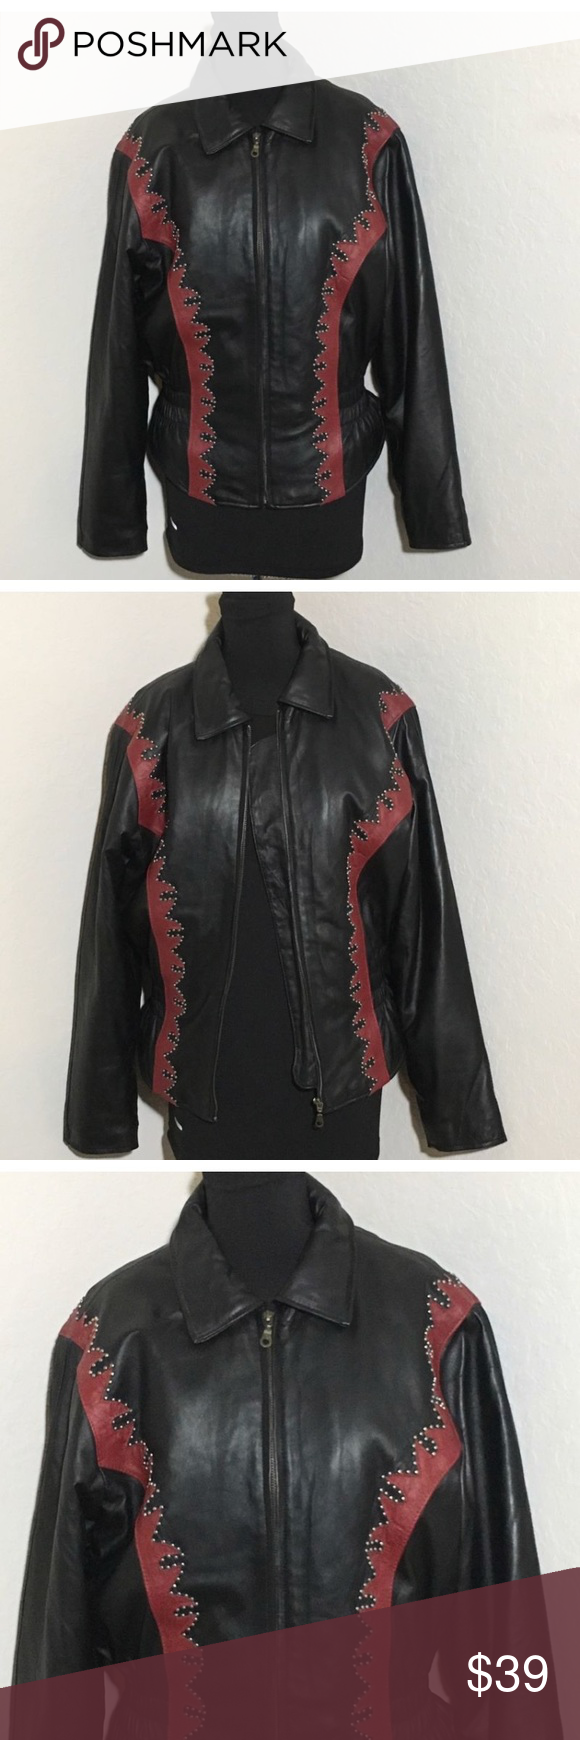 Black Red Flame Studded Leather Jacket Motorcycle Women's